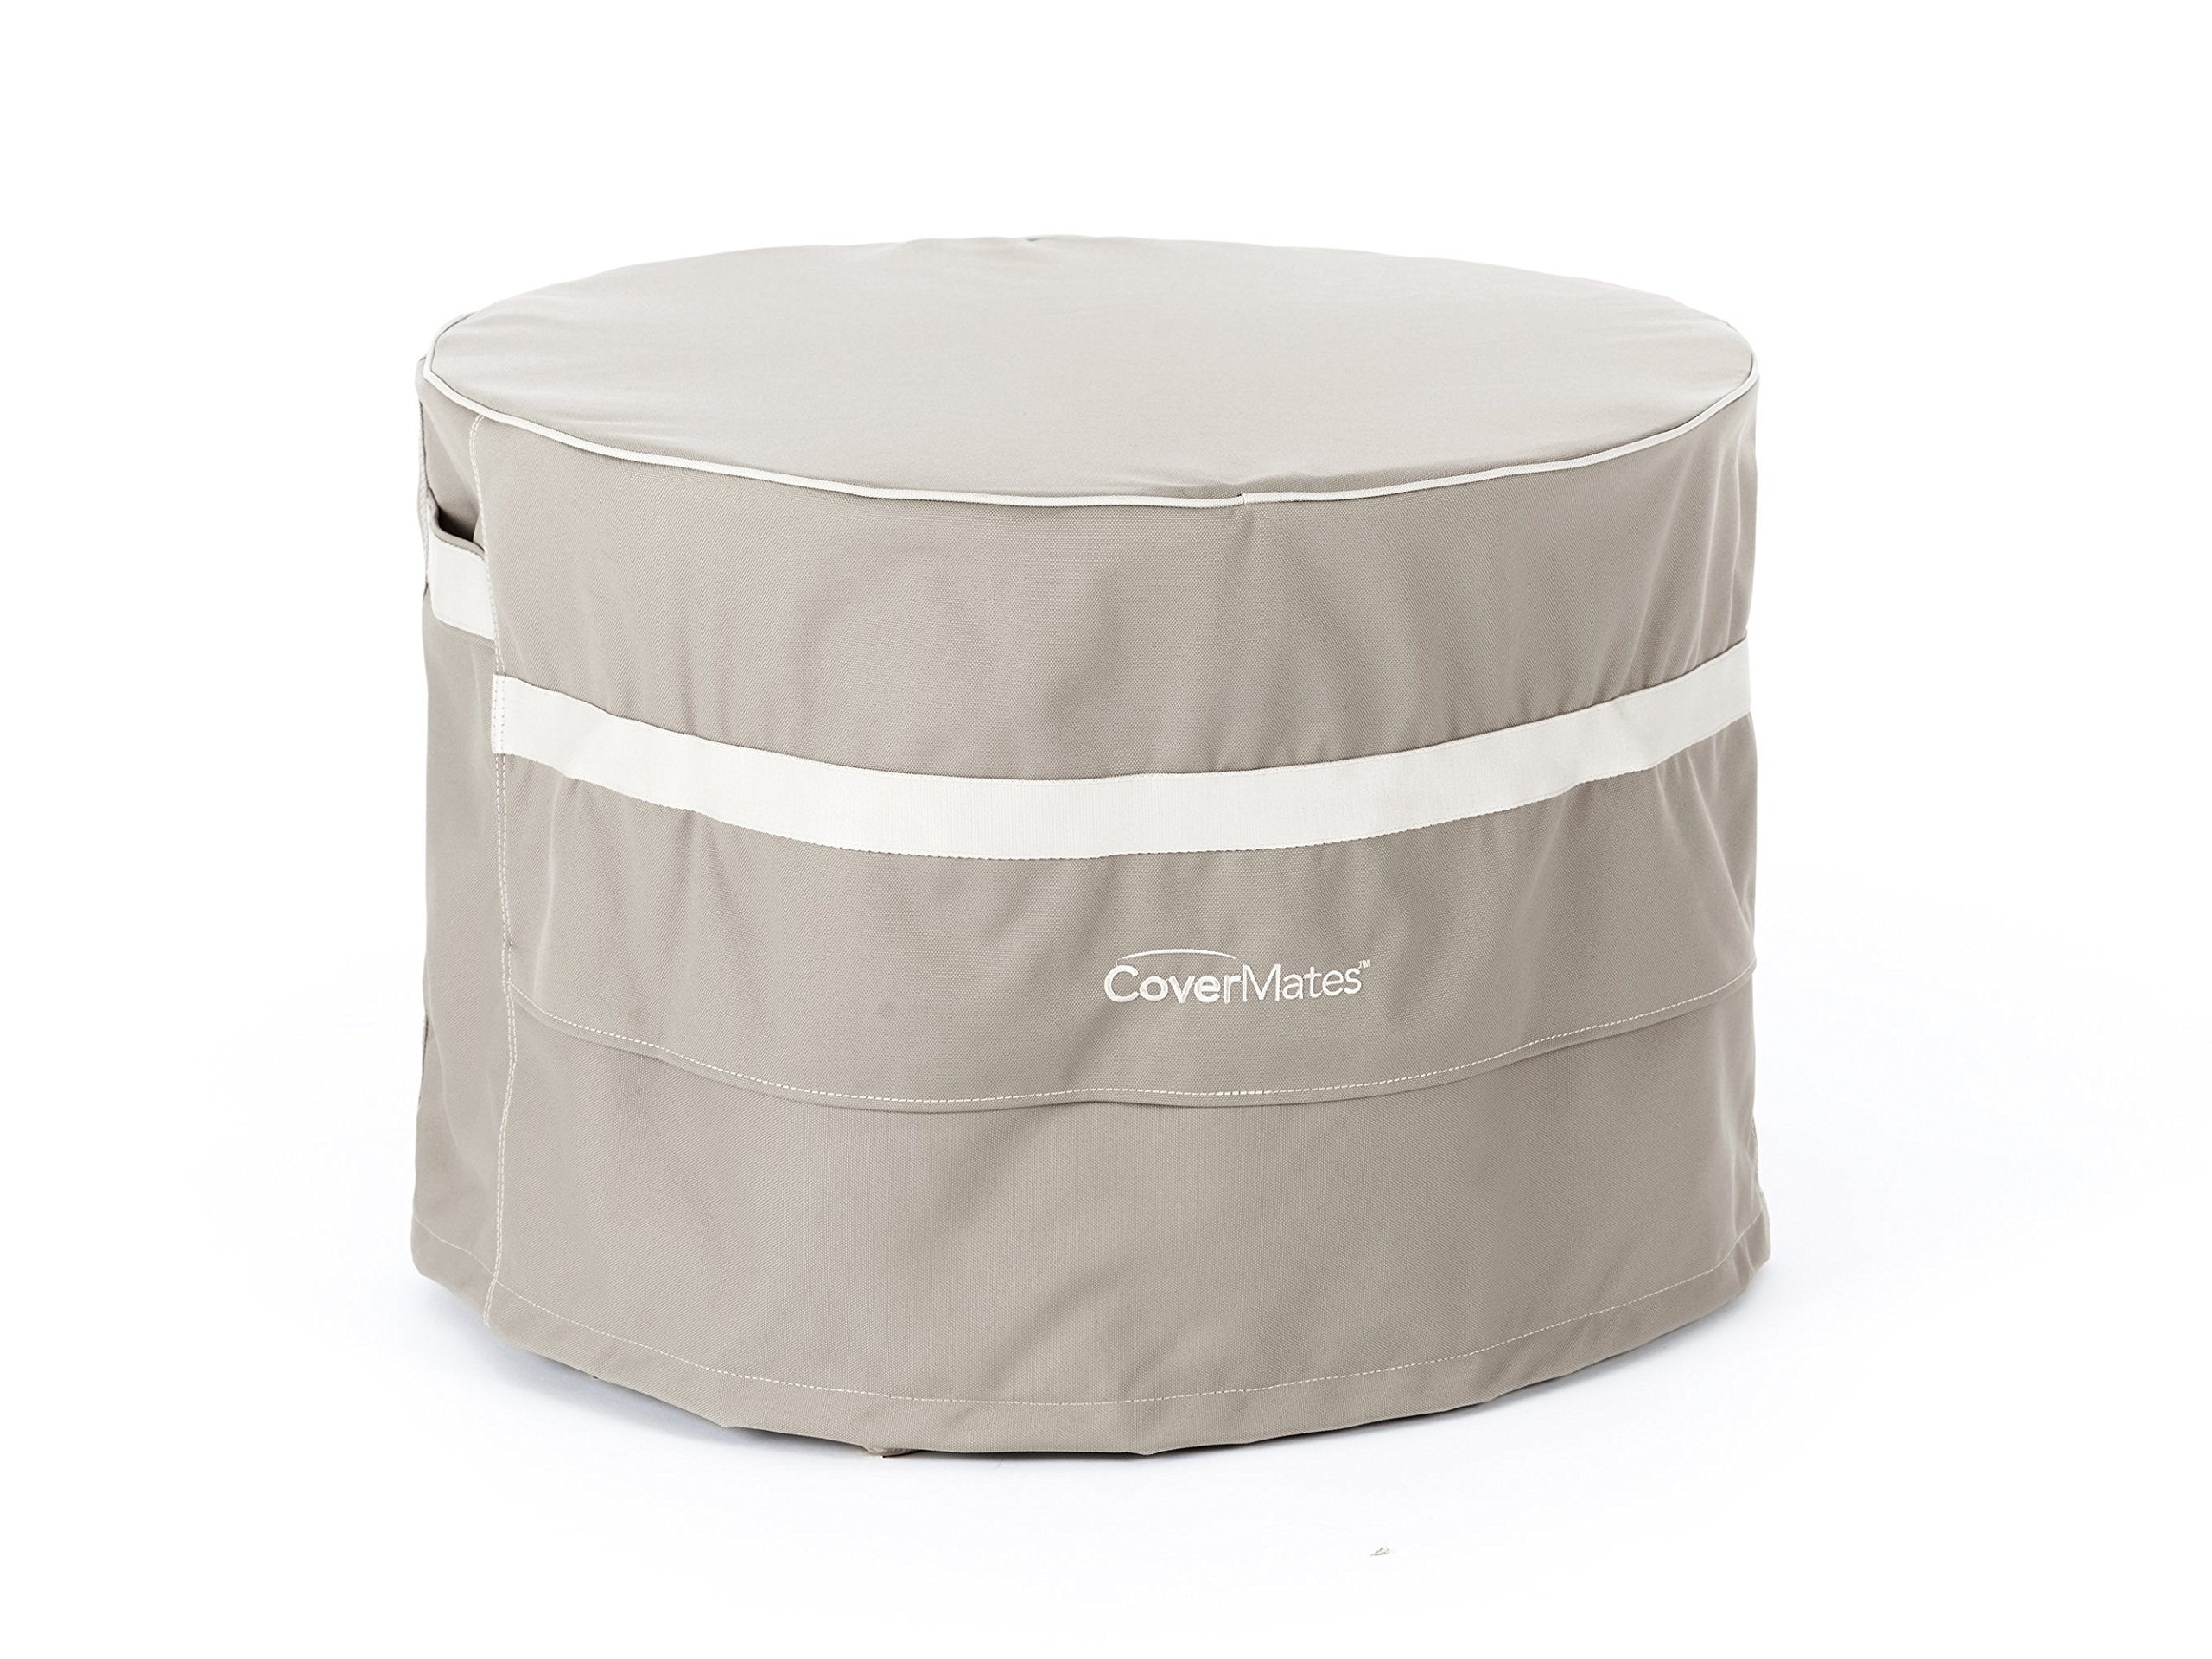 Covermates - Round Accent Table Cover - 24DIAMETER x 18H - Prestige - 900D Solution-Dyed Poly - Reinforced Handles - Front/Back Covered Mesh Vents - 7 YR Warranty - Weather Resistant - Clay by Covermates